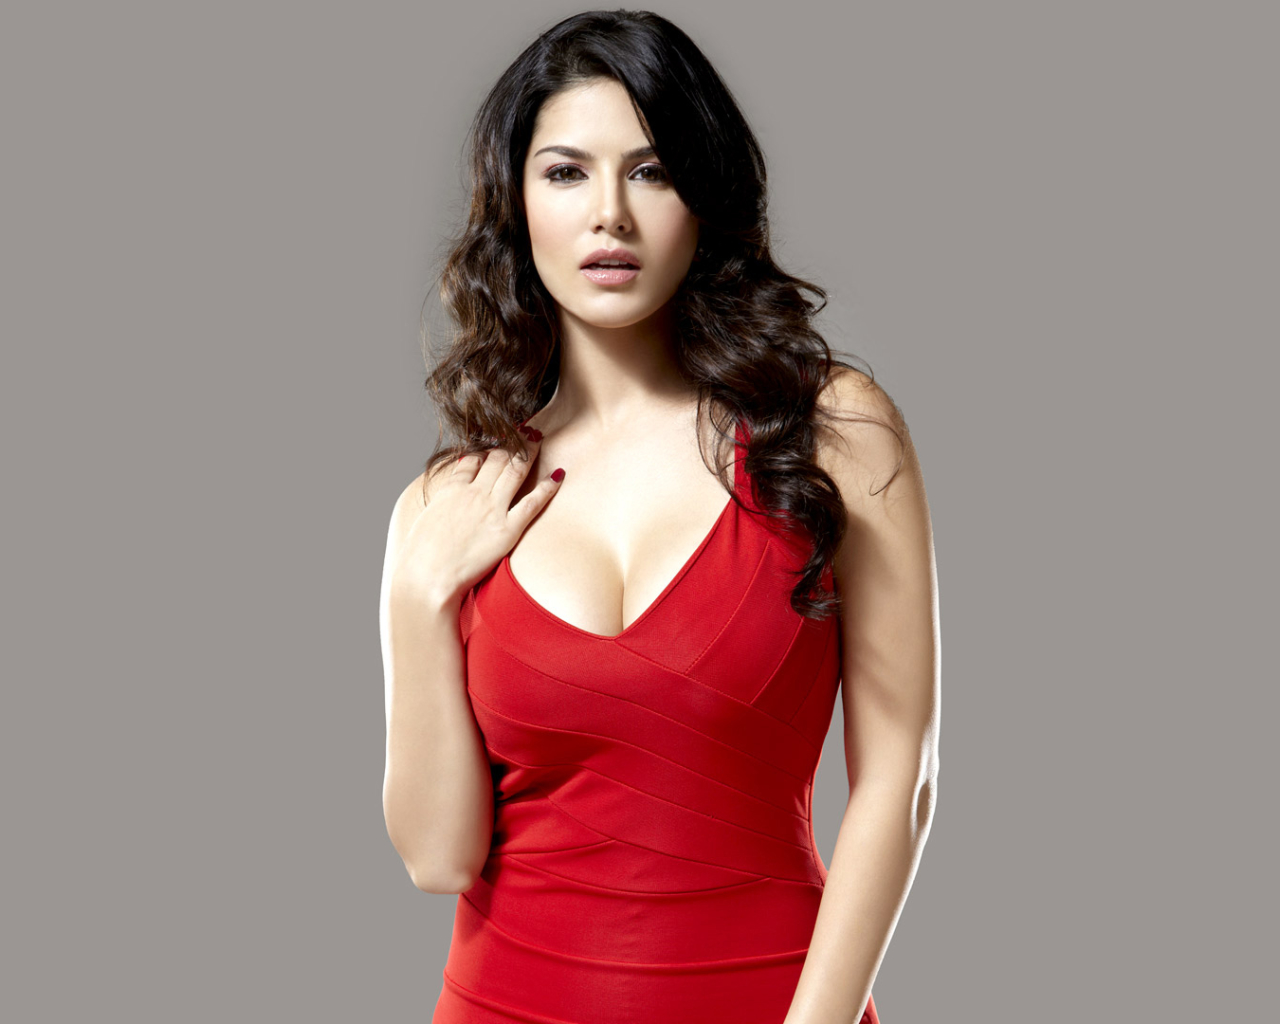 Sunny leone in red dress photoshoot full hd wallpaper - Sunny leone full hd wallpaper ...